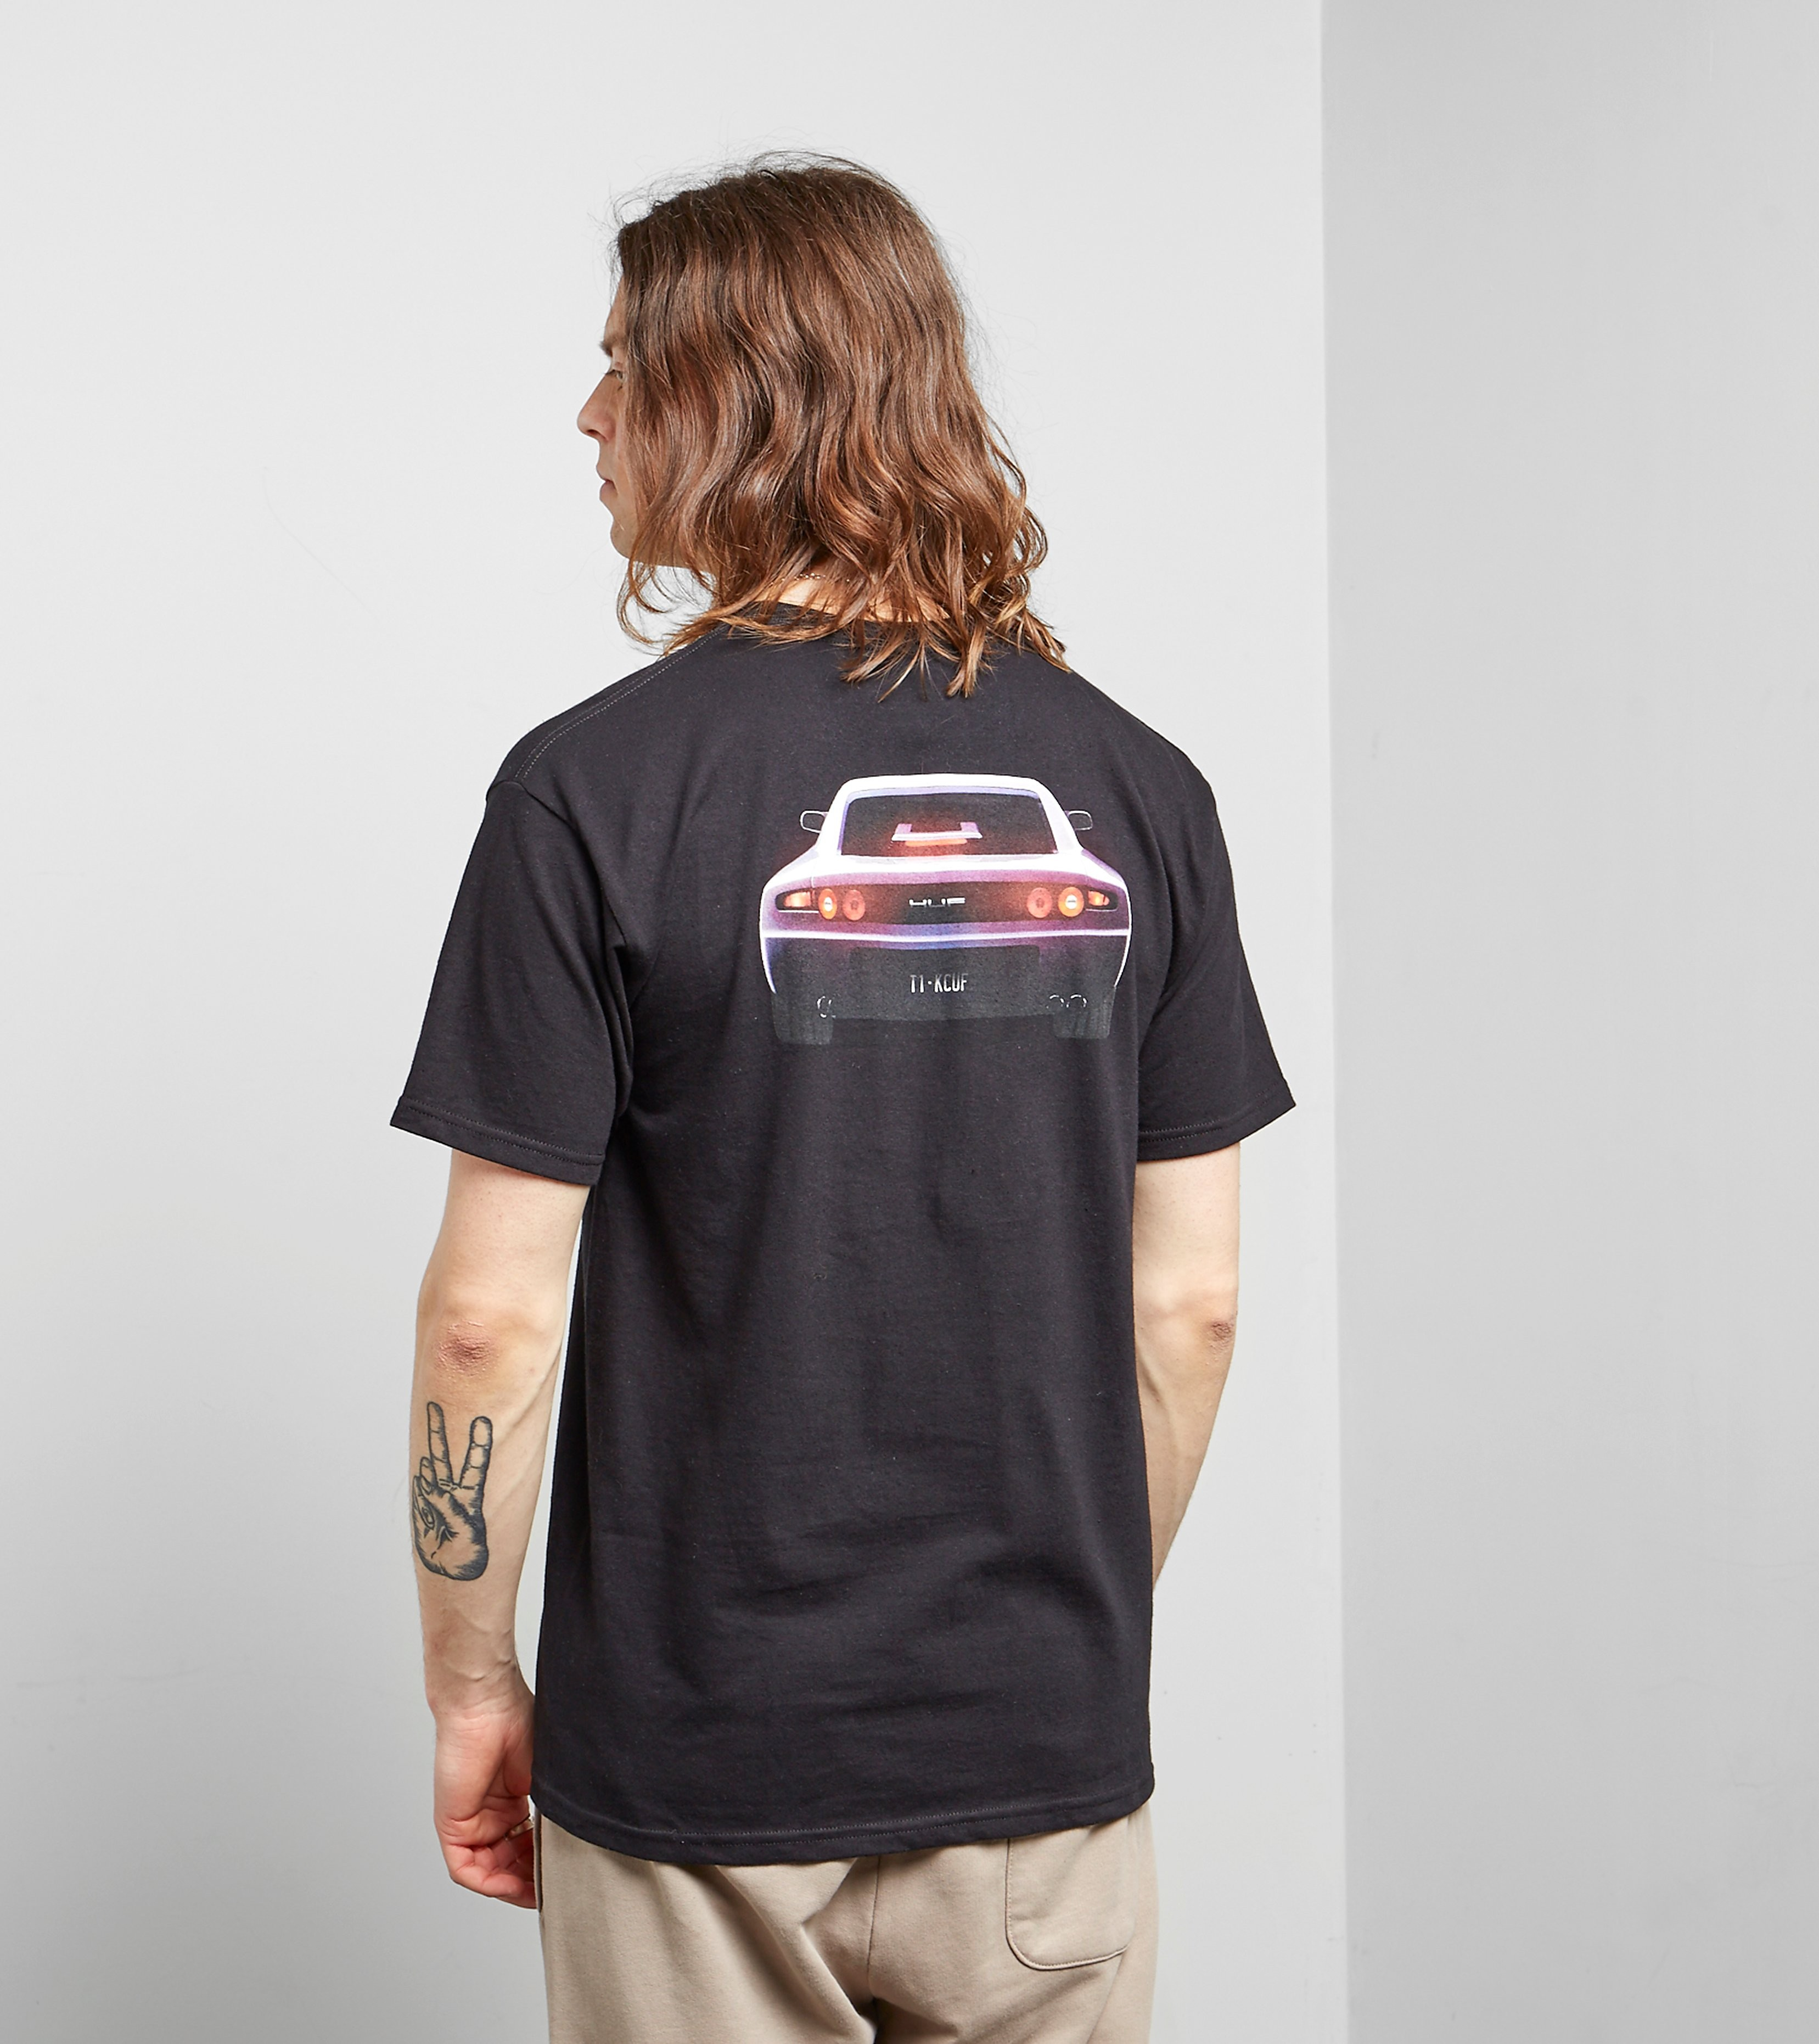 HUF Night Vision T-Shirt